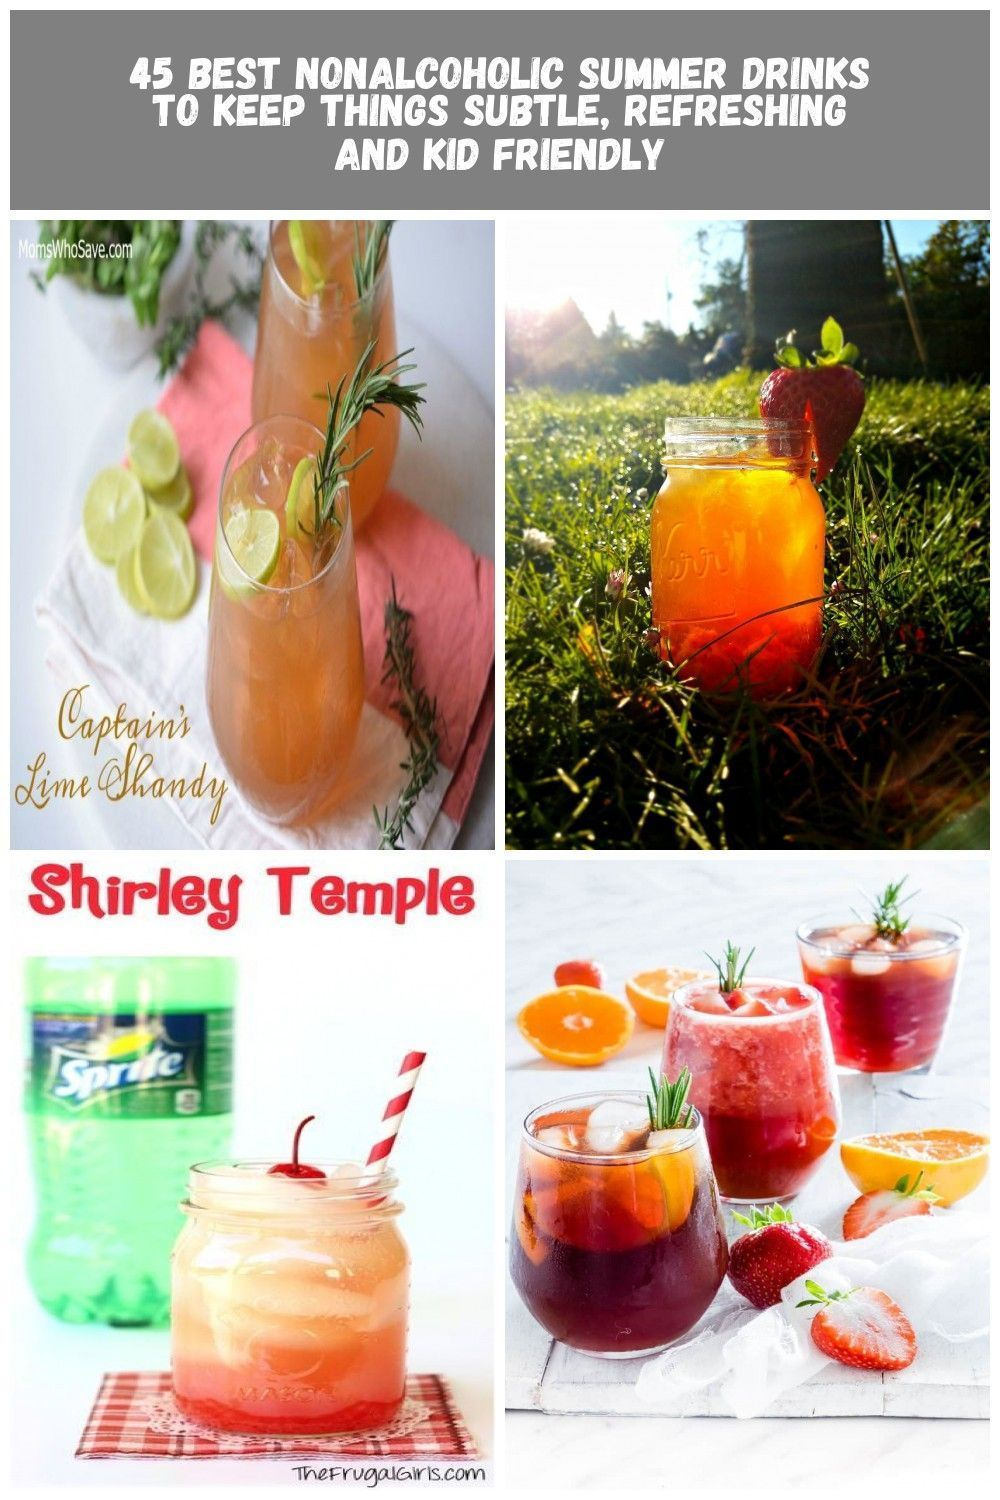 Summer Cocktail Recipes to Cool and Refresh #nonalcoholicsummerdrinks Captain's Lime Shandy - refreshing summer drinks nonalcoholic, summer drinks nonalcoholic healthy, summer drinks nonalcoholic easy, fun summer drinks nonalcoholic #nonalcoholicsummerdrinks Summer Cocktail Recipes to Cool and Refresh #nonalcoholicsummerdrinks Captain's Lime Shandy - refreshing summer drinks nonalcoholic, summer drinks nonalcoholic healthy, summer drinks nonalcoholic easy, fun summer drinks nonalcoholic drin #nonalcoholicsummerdrinks